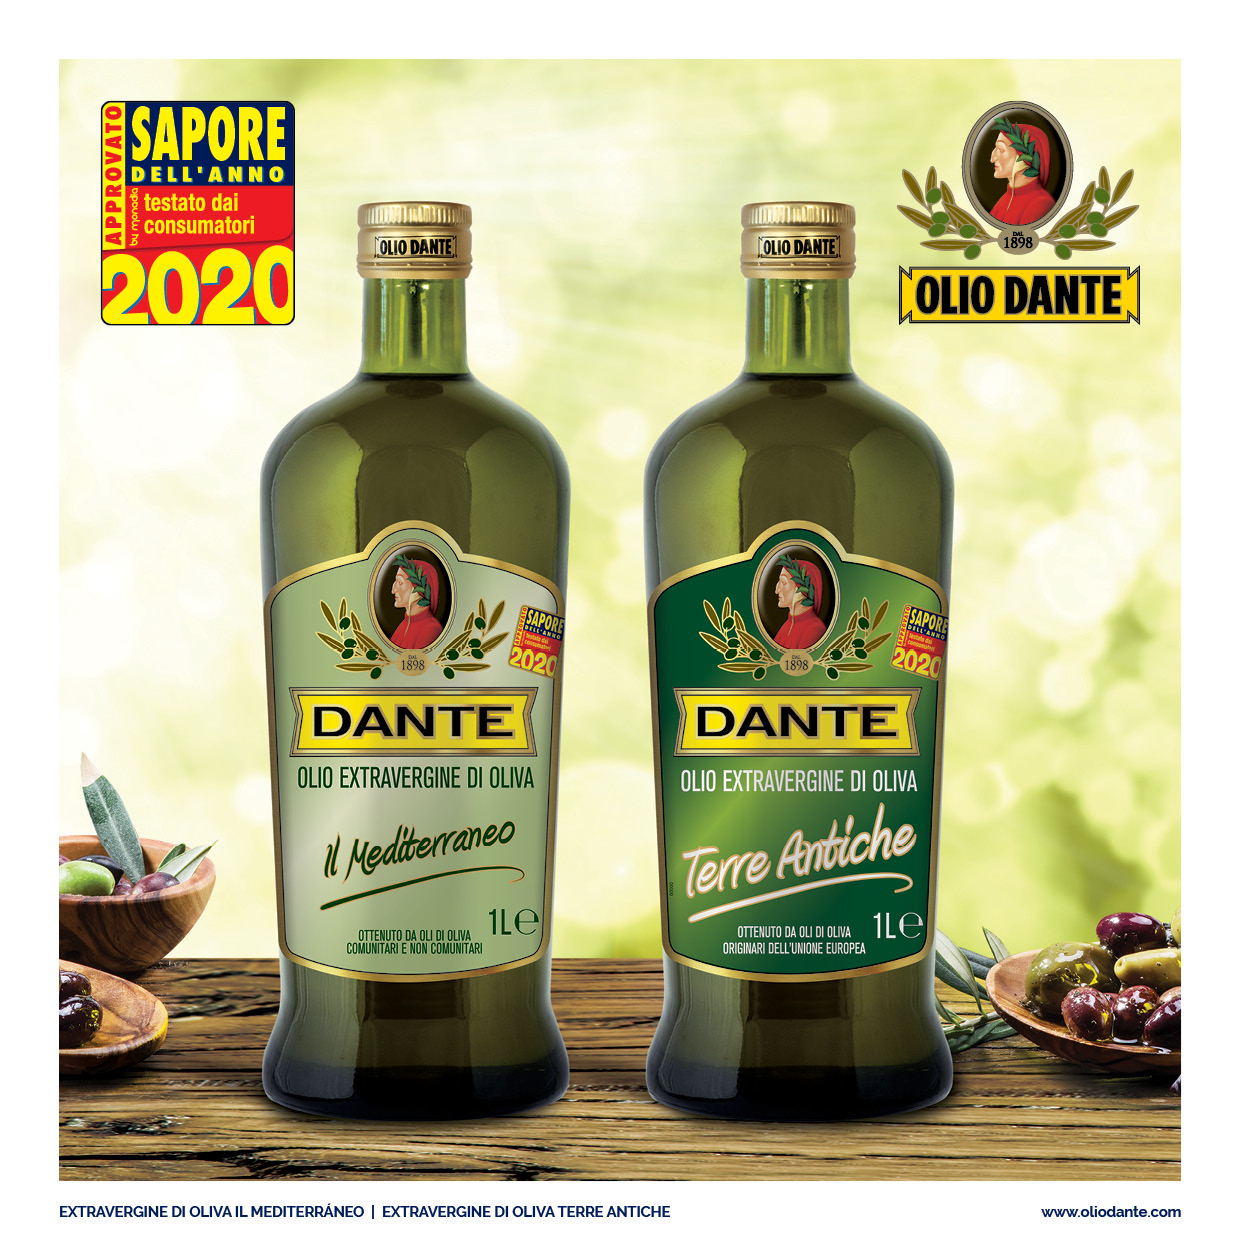 "Olio Dante elected ""Taste of the Year 2020"""